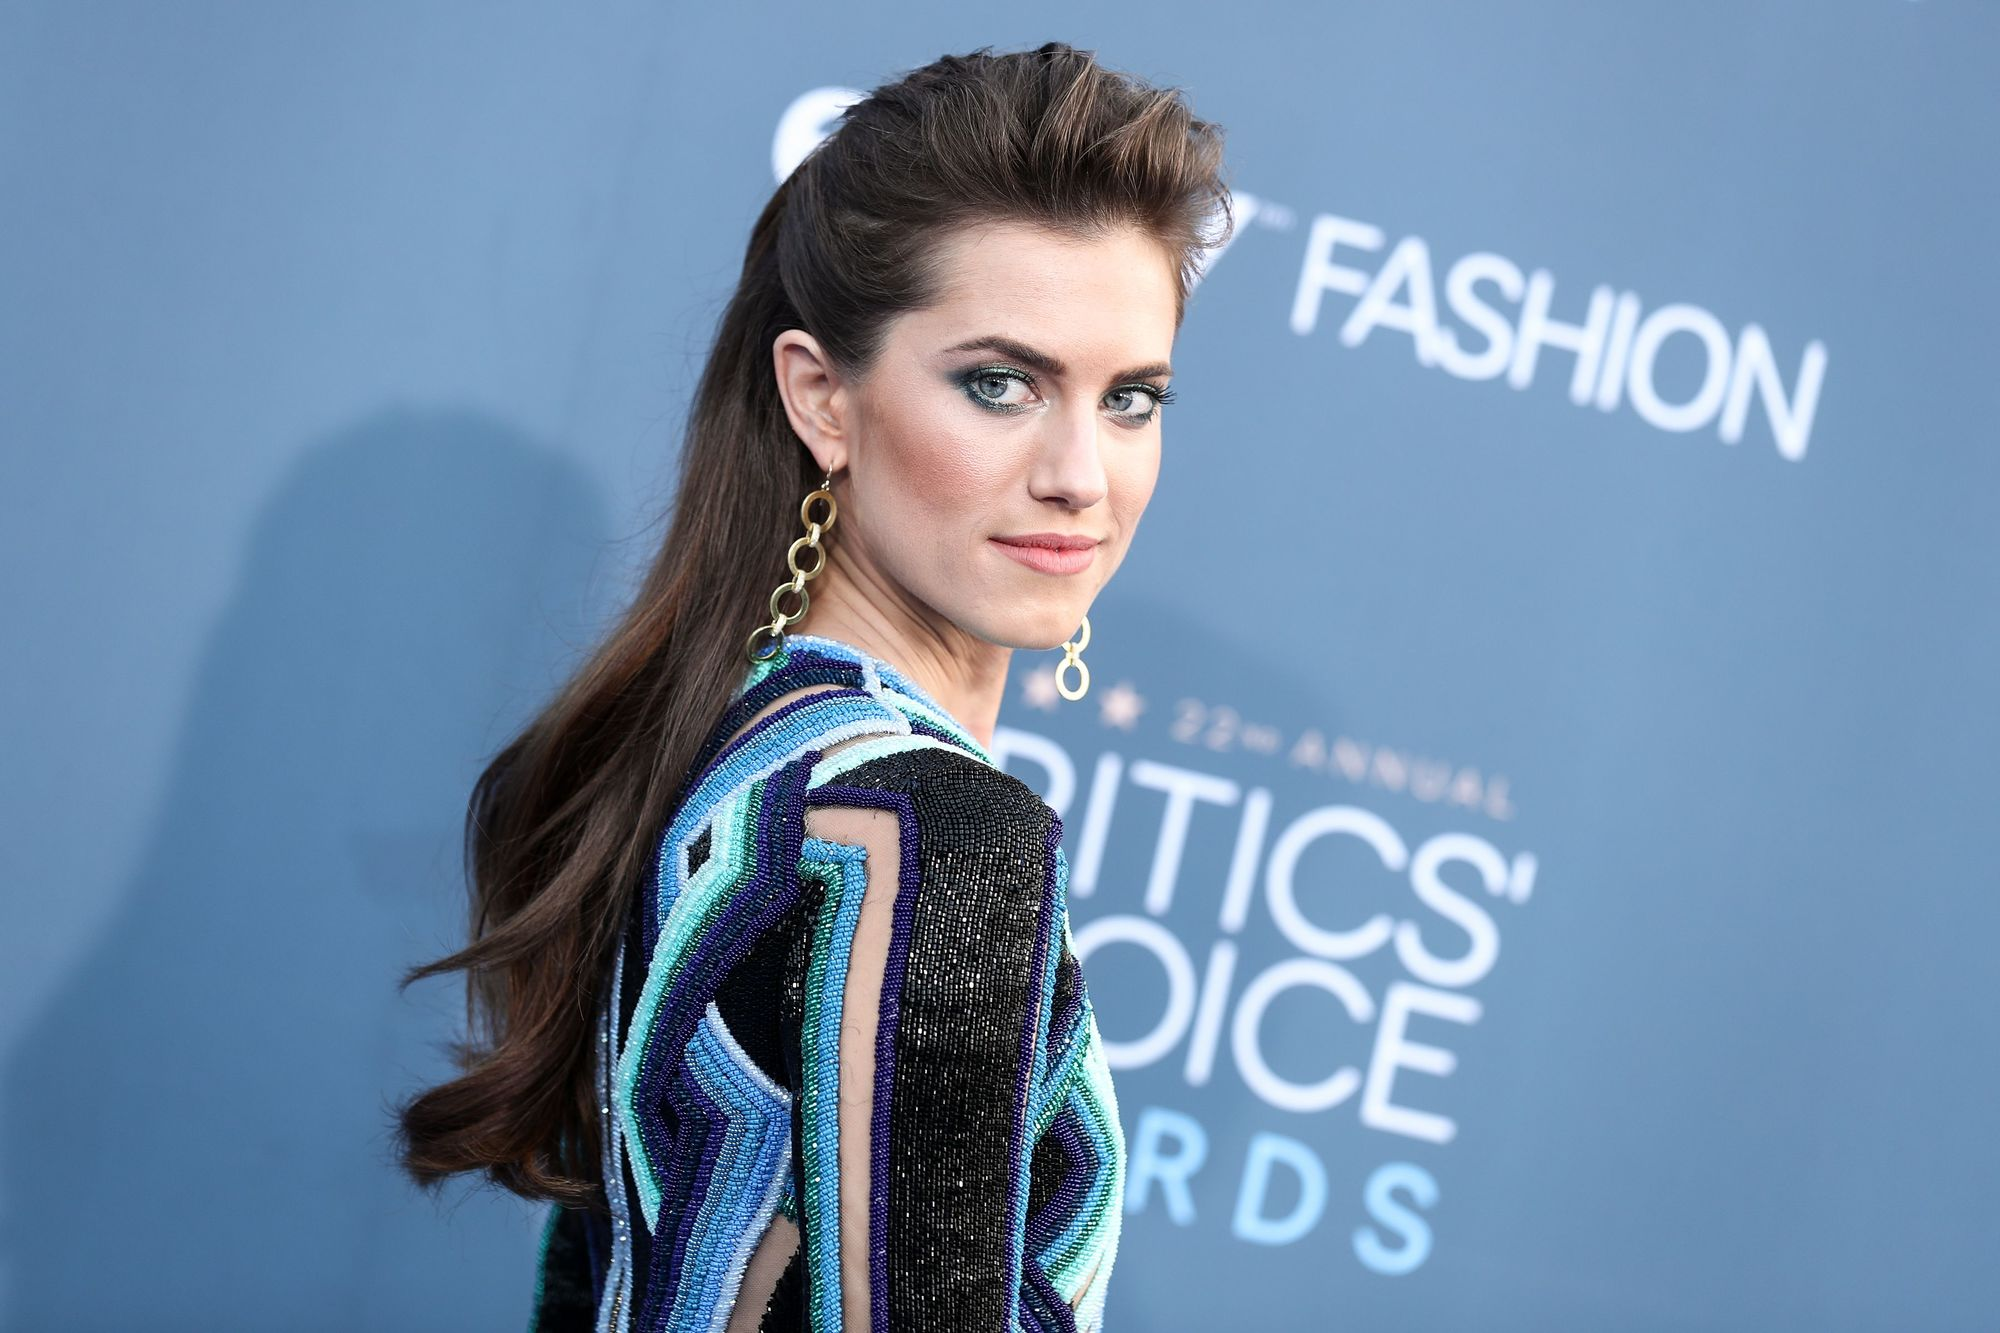 Vintage hairstyles for long hair: Close up shot of Allison Williams with long chocolate brown hair styled into a half-up, half-down quiff hairstyle on the red carpet